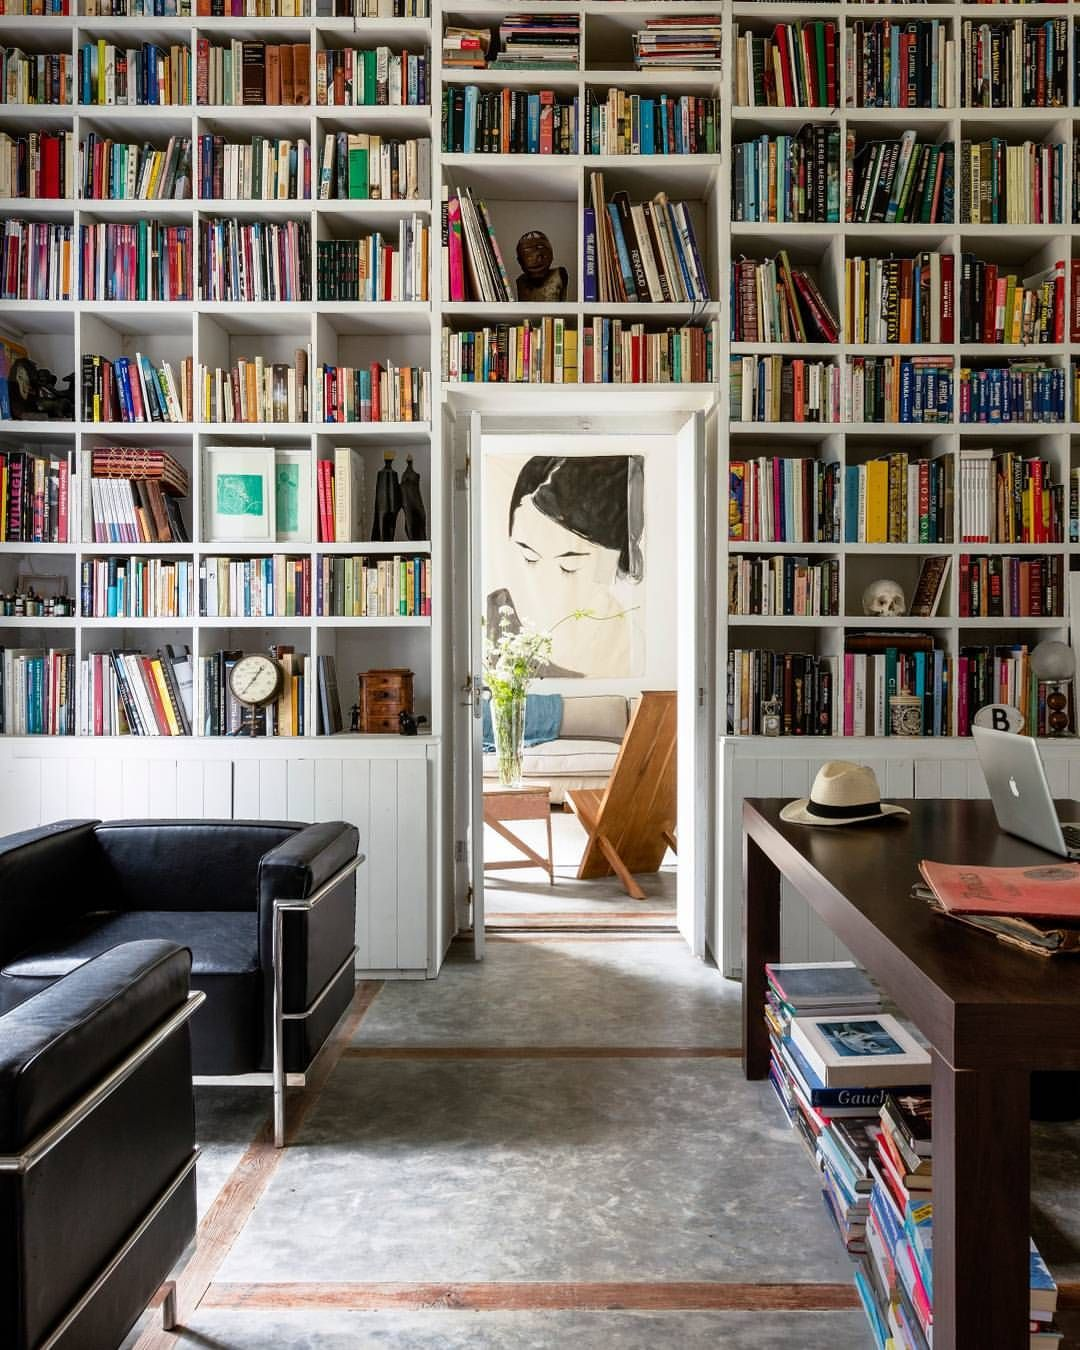 Elle Decor Bookshelves: Pin By Sarah McCall On For The Love Of Books... In 2019